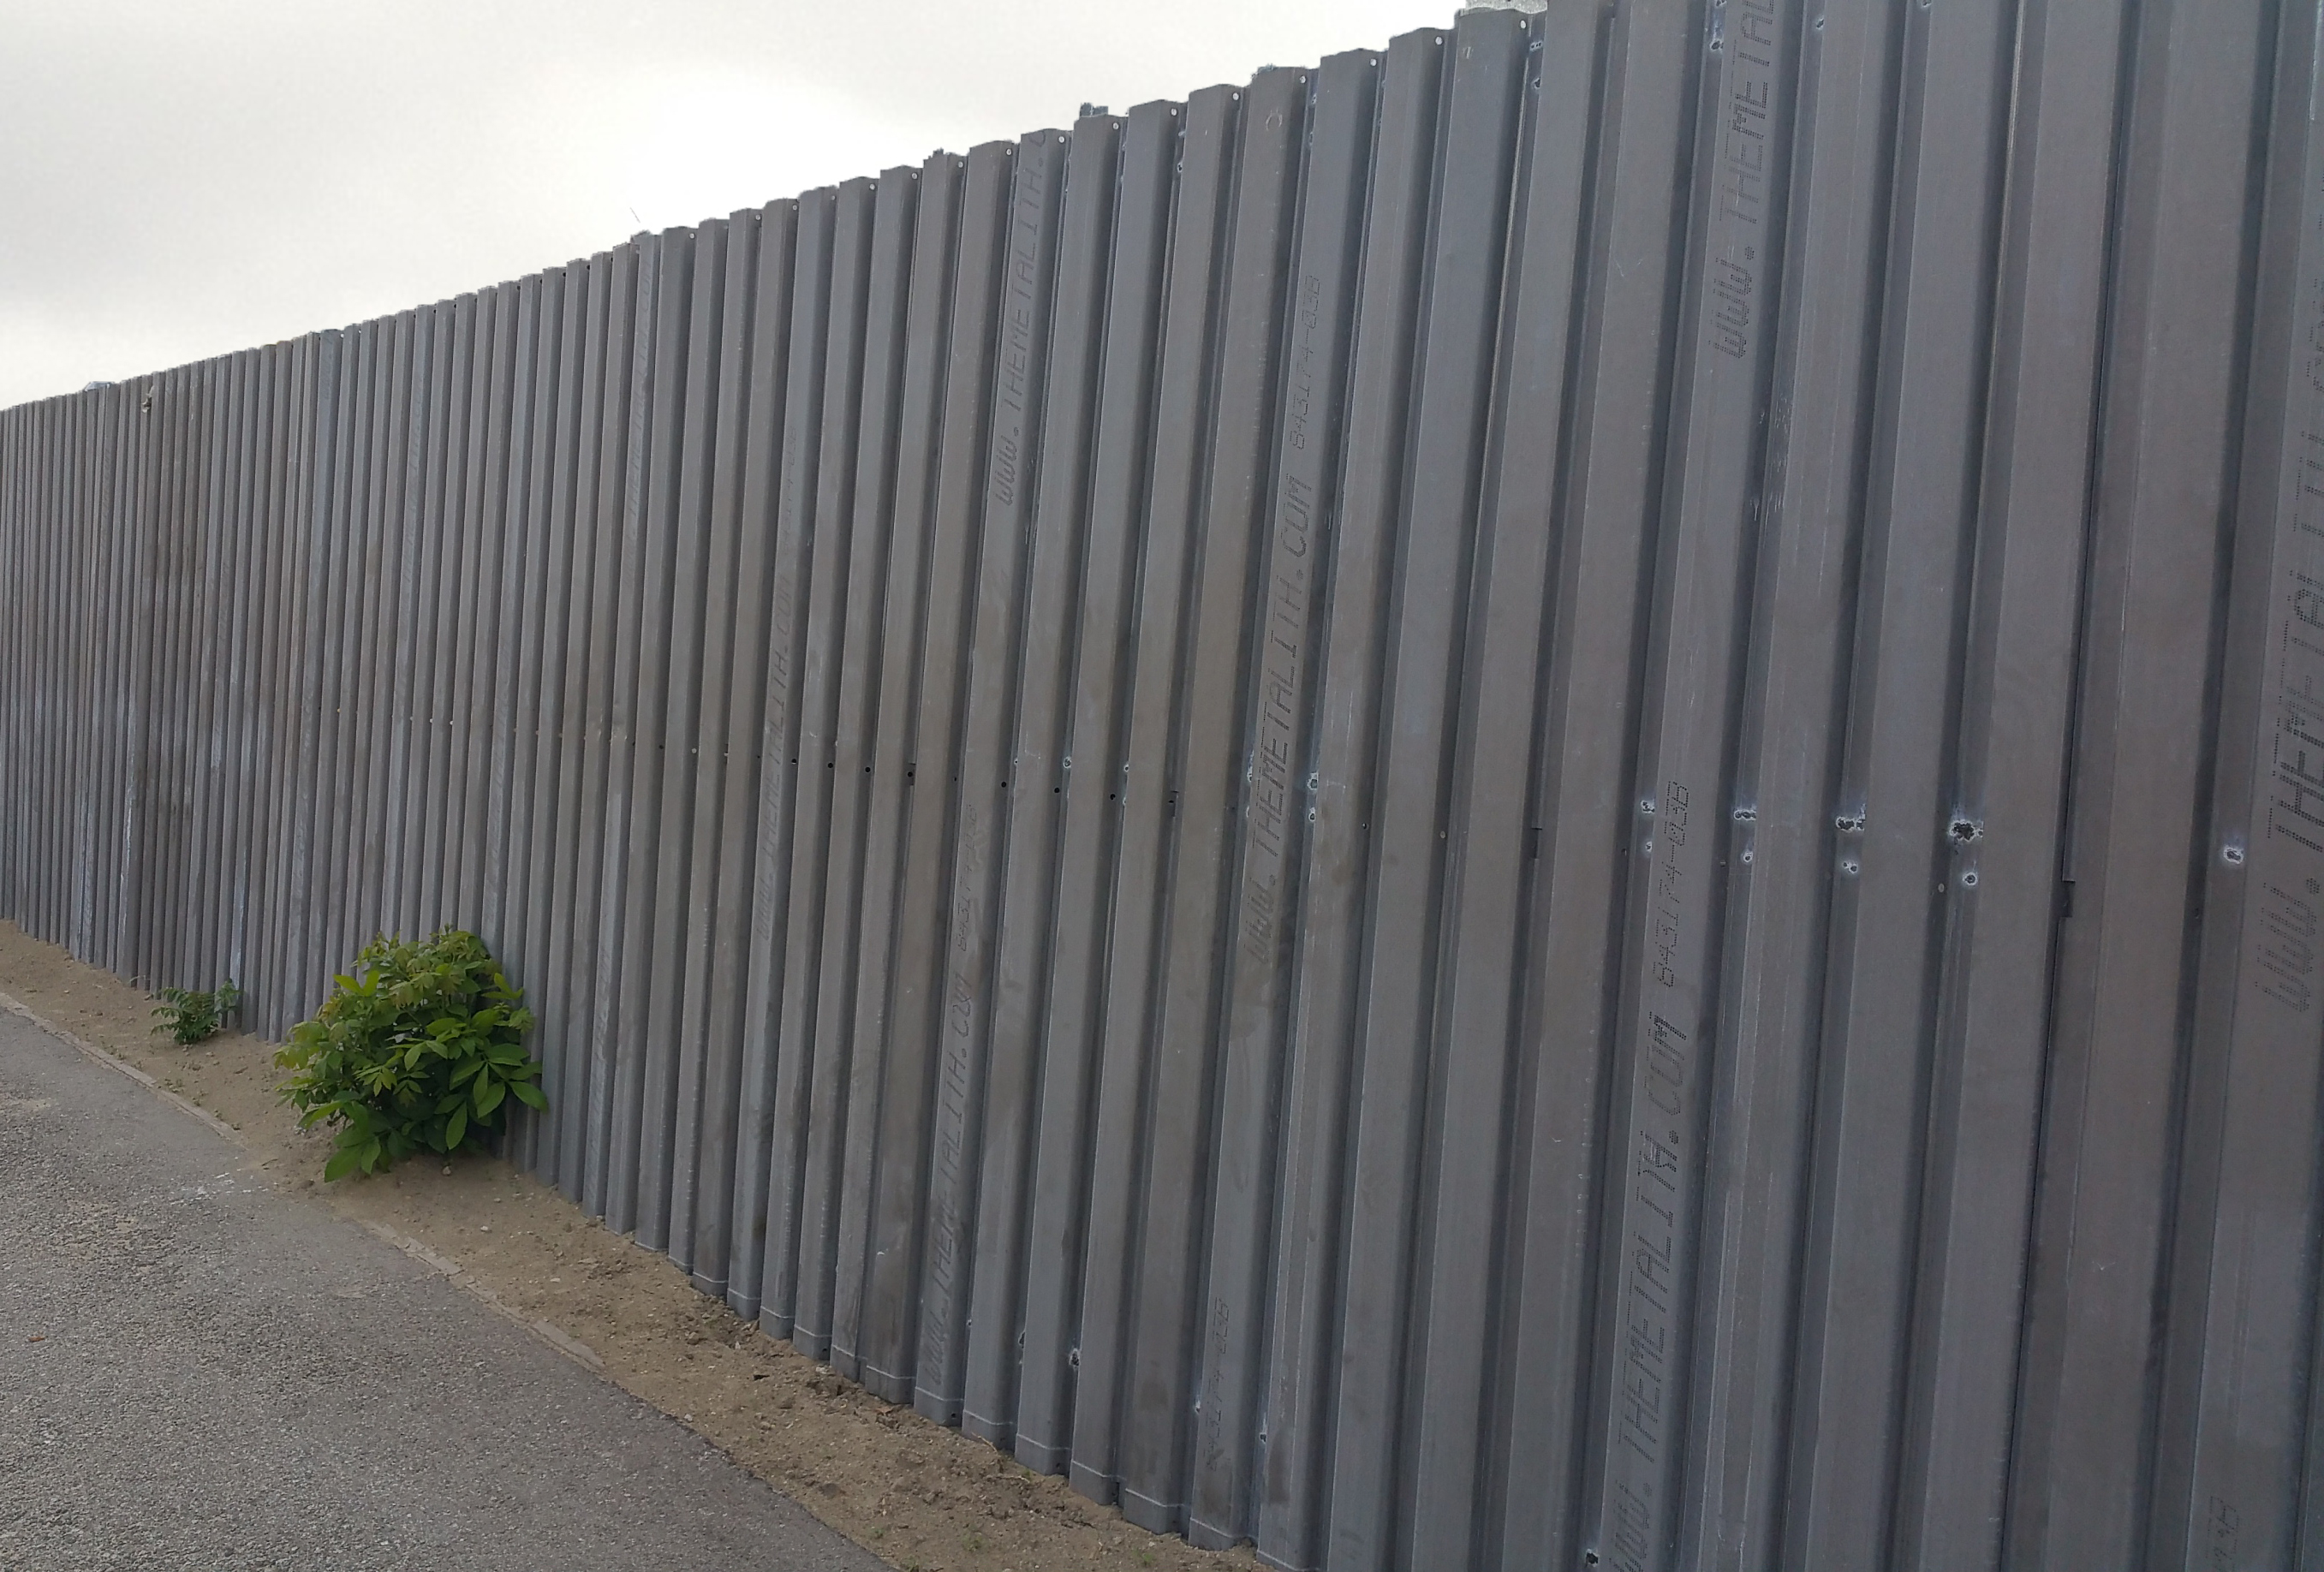 Metal Barrier Border Fencing Fencing B Deck Roofing Sheets